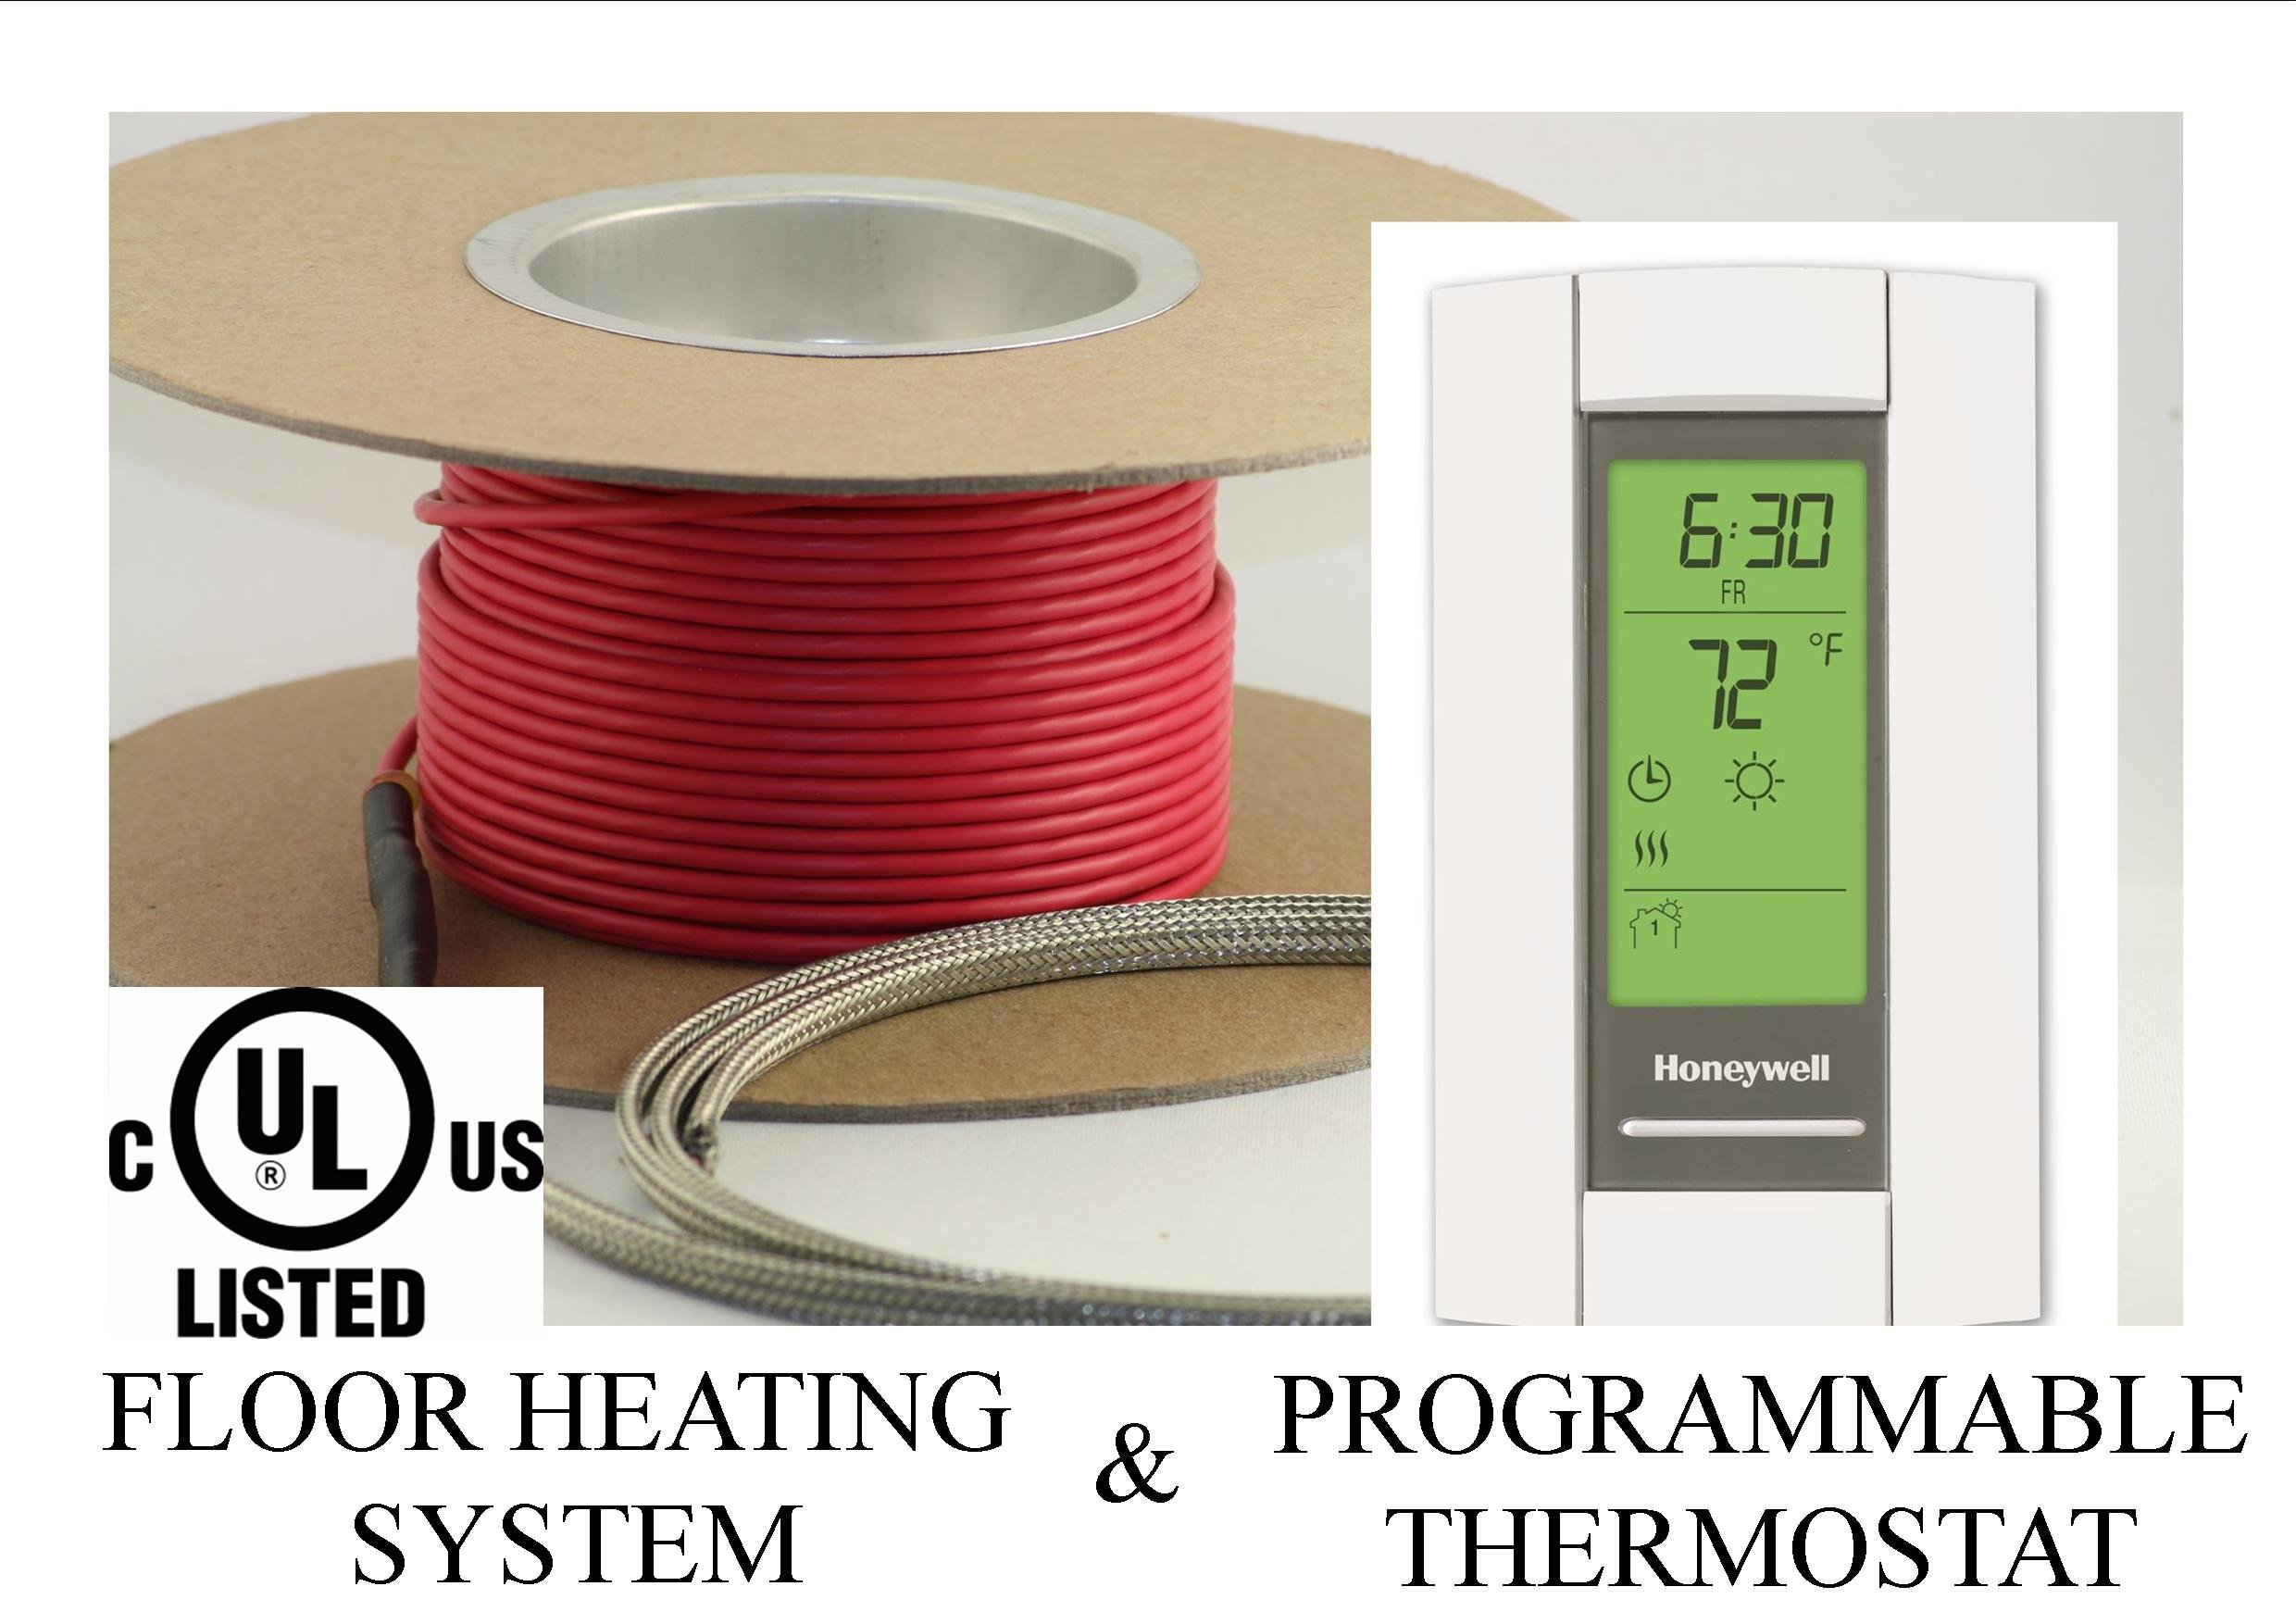 60 Sqft Cable Set, Electric Radiant Floor Heat Heating System with Aube Digital Floor Sensing Thermostat by Warming Systems